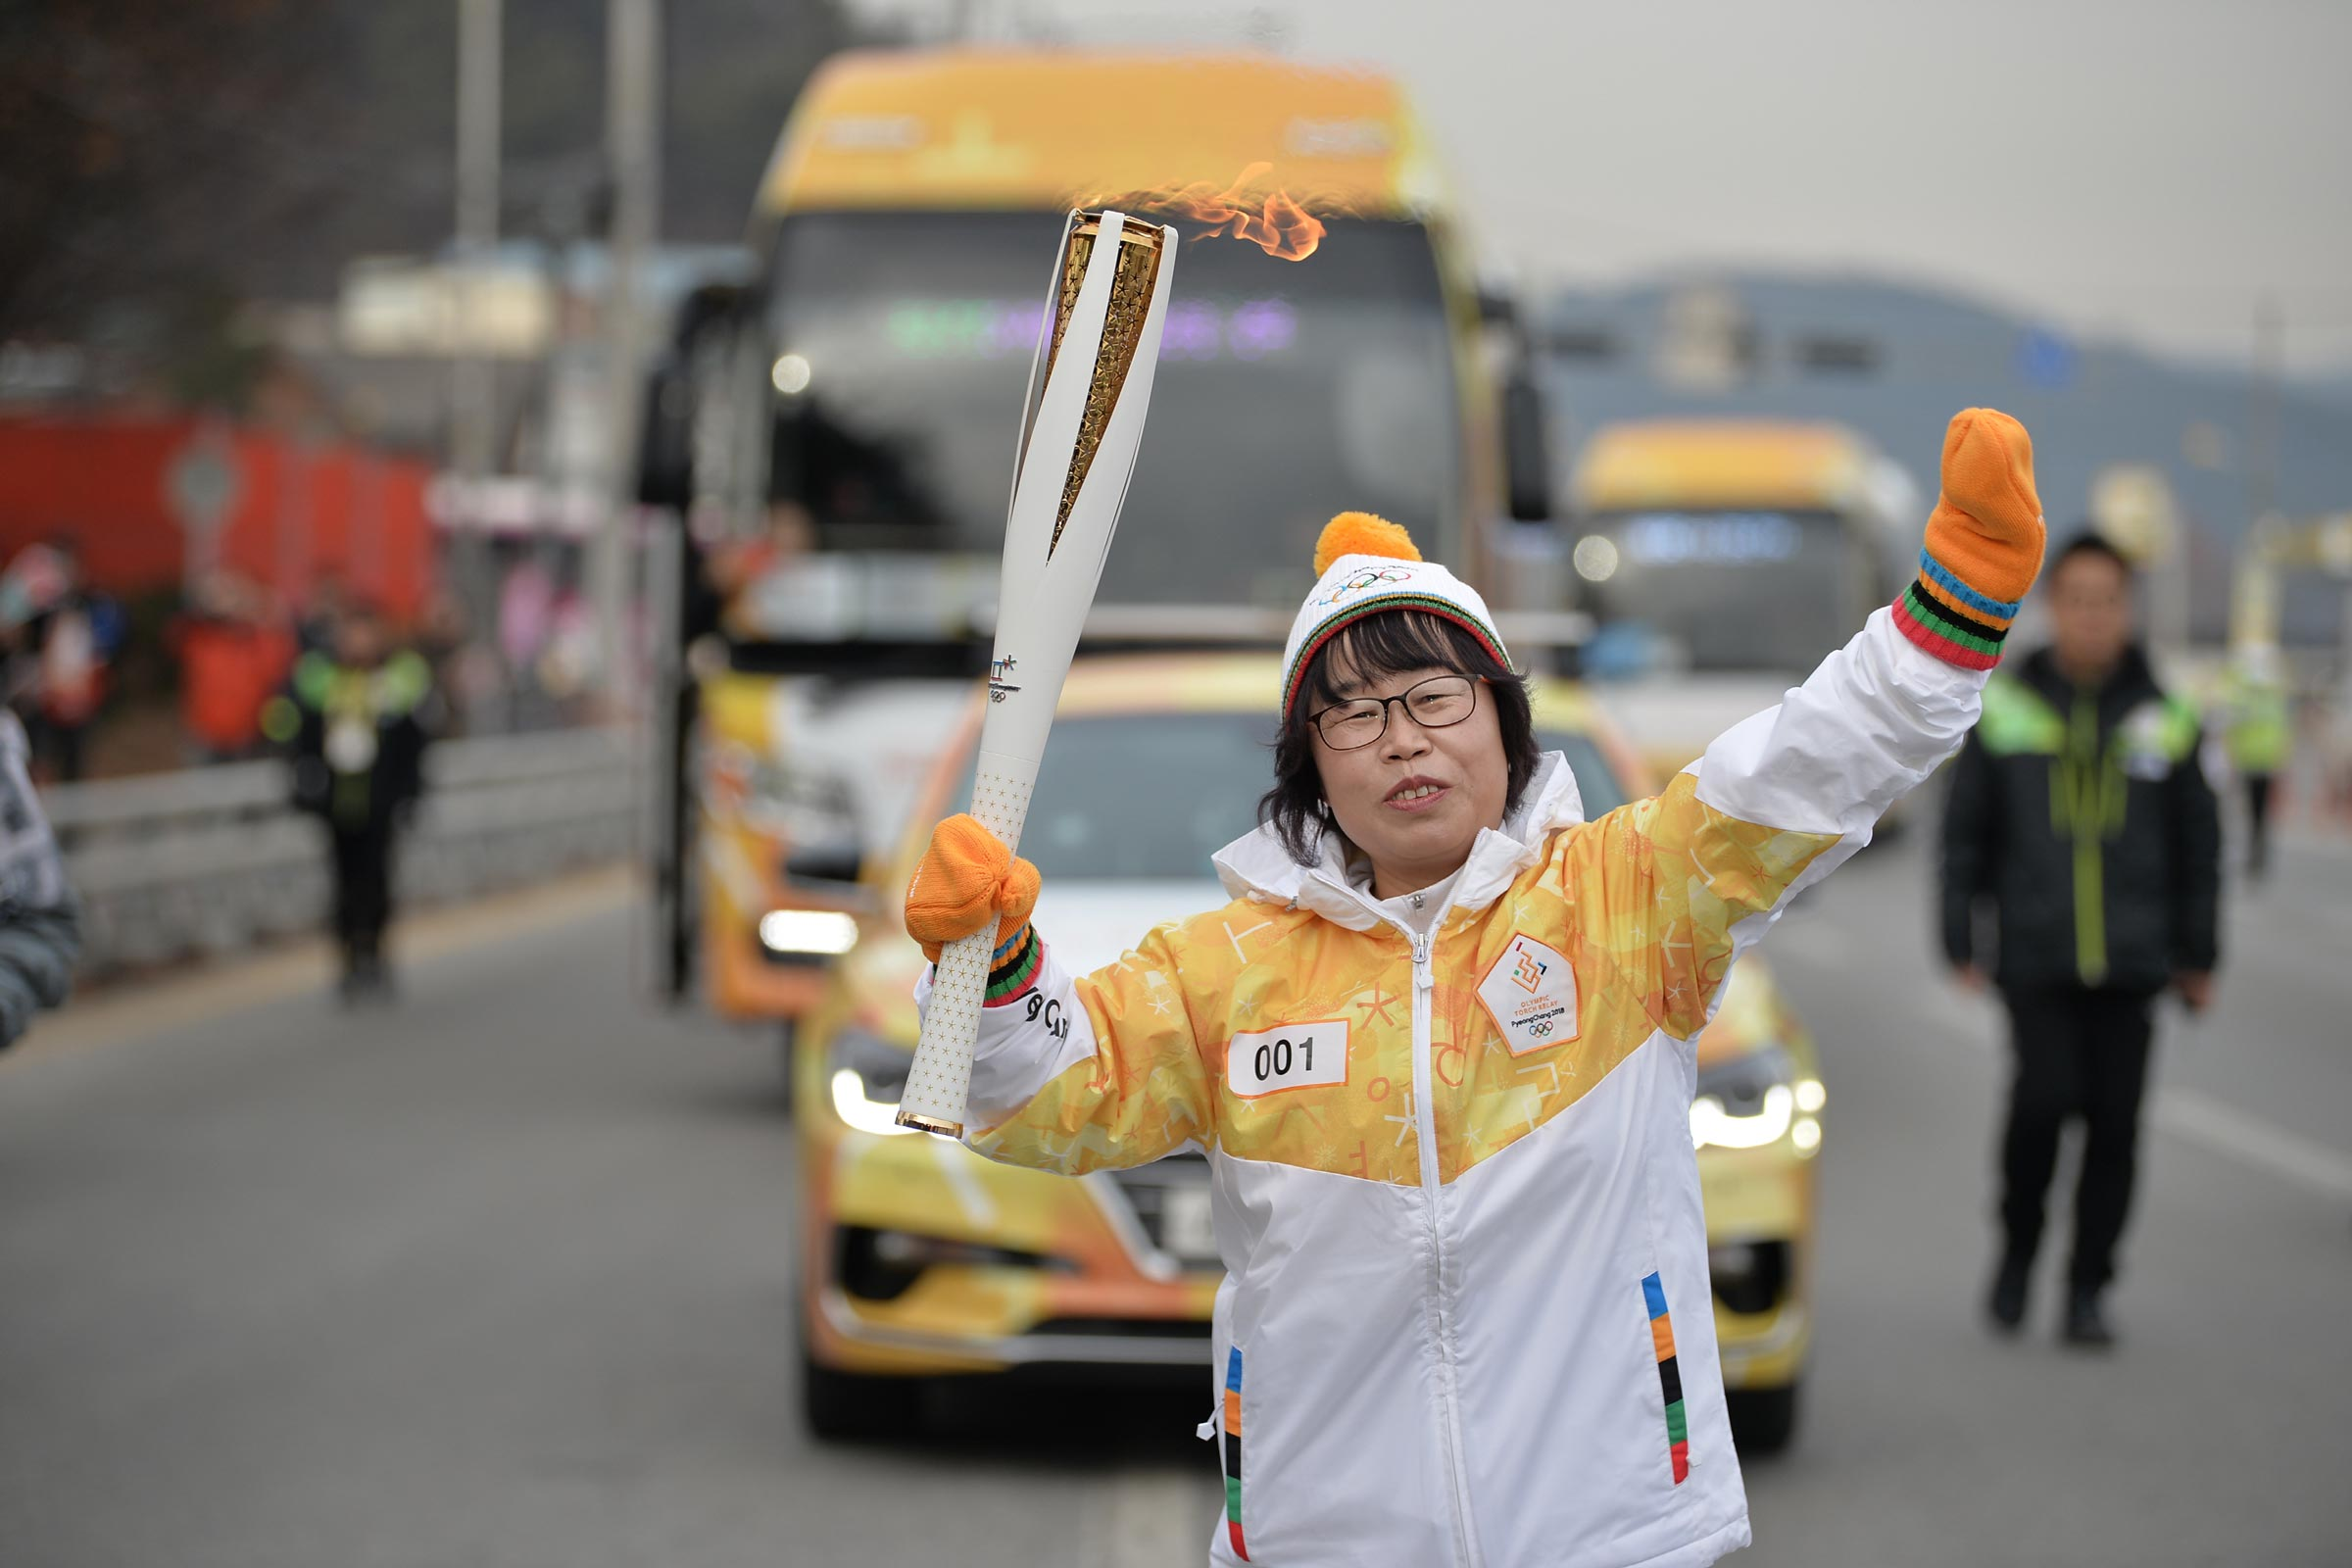 PyeongChang 2018 Olympic Torch Relay - Day 44